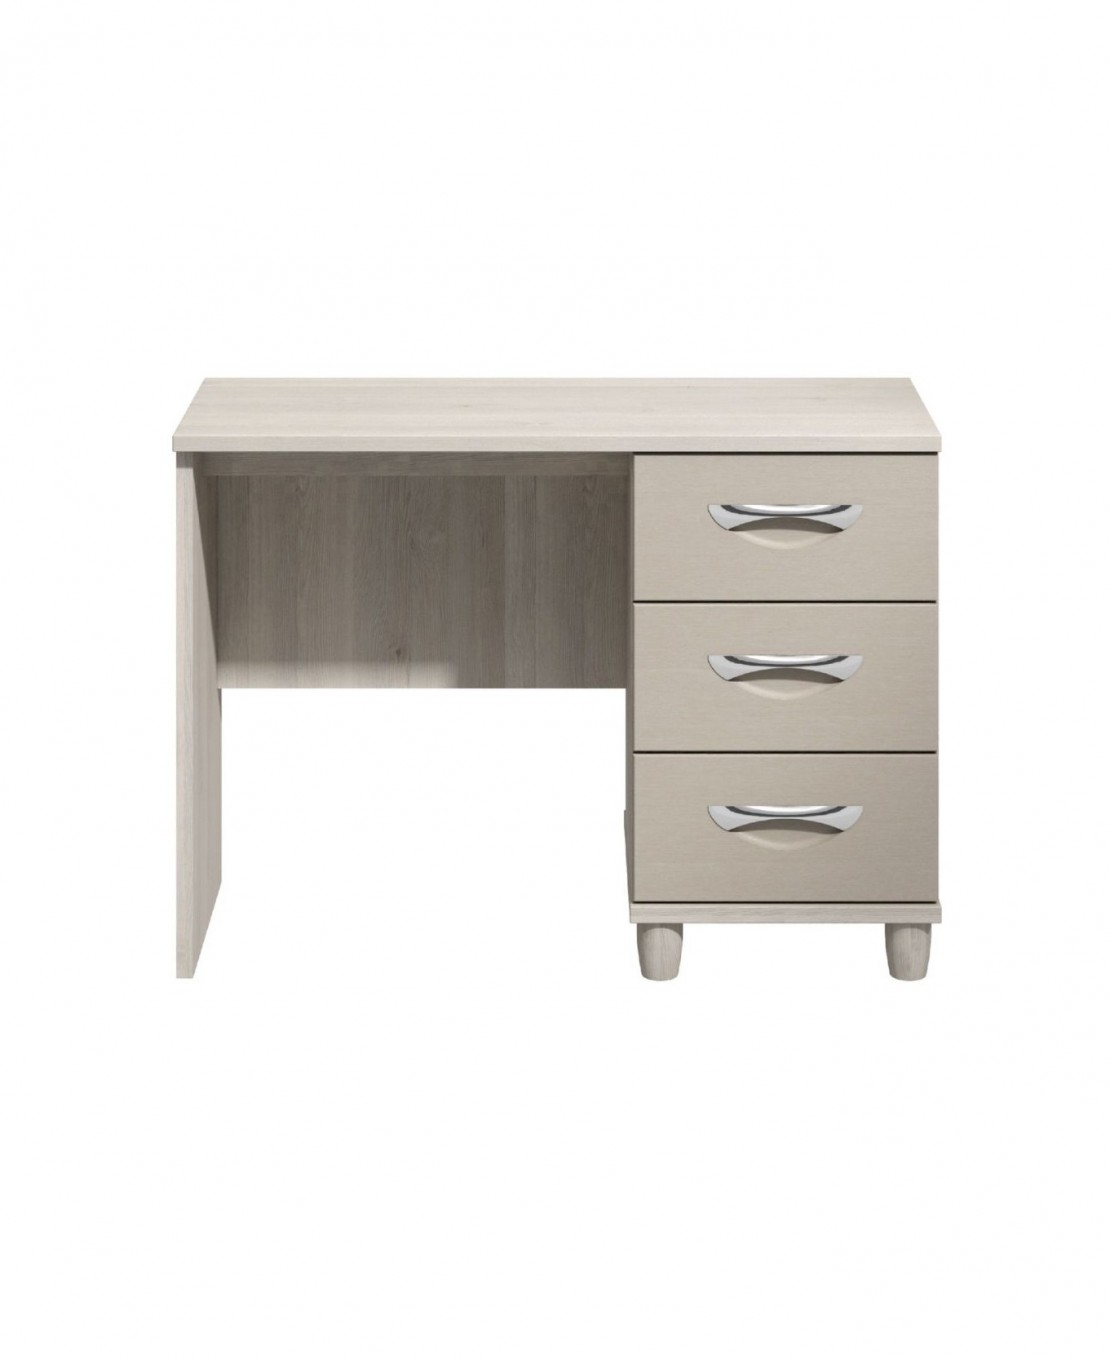 /_images/product-photos/kt-furniture-moda-cashmere-single-ped-dressing-table-a.jpg